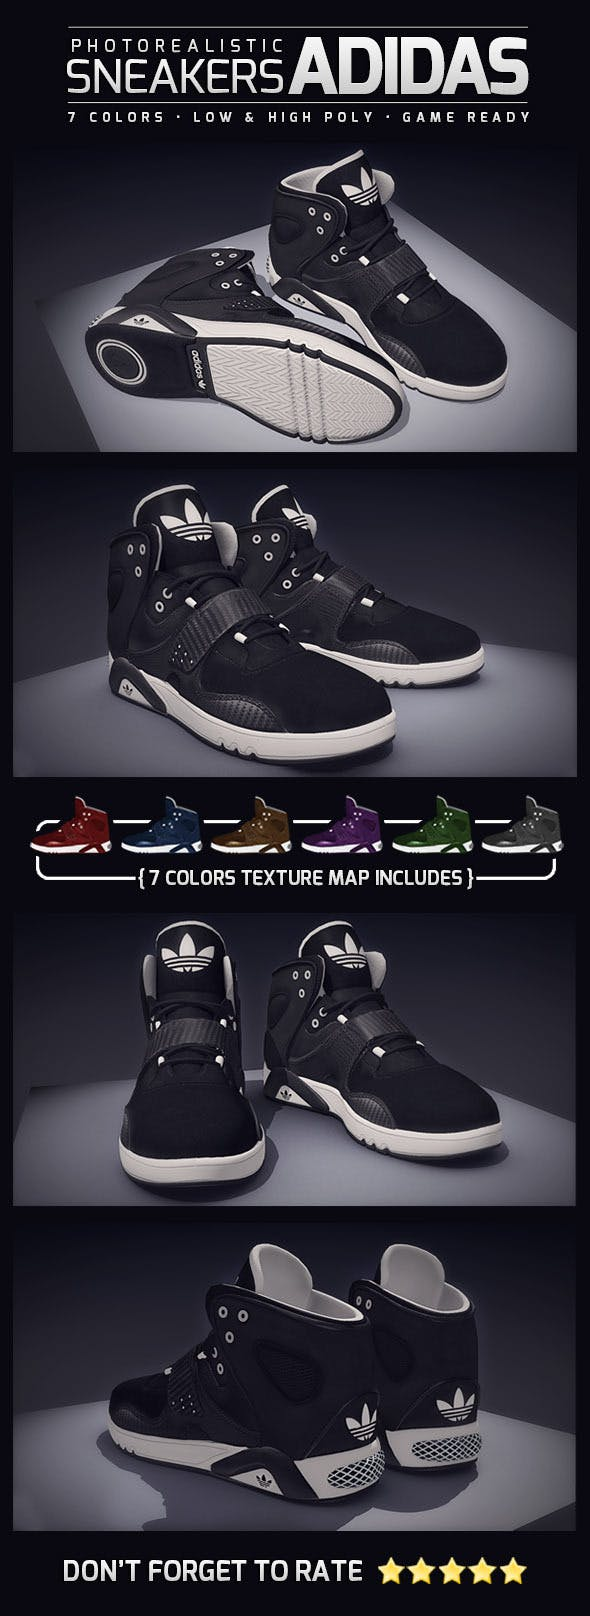 Sneakers Adidas Photorealistic - 3DOcean Item for Sale